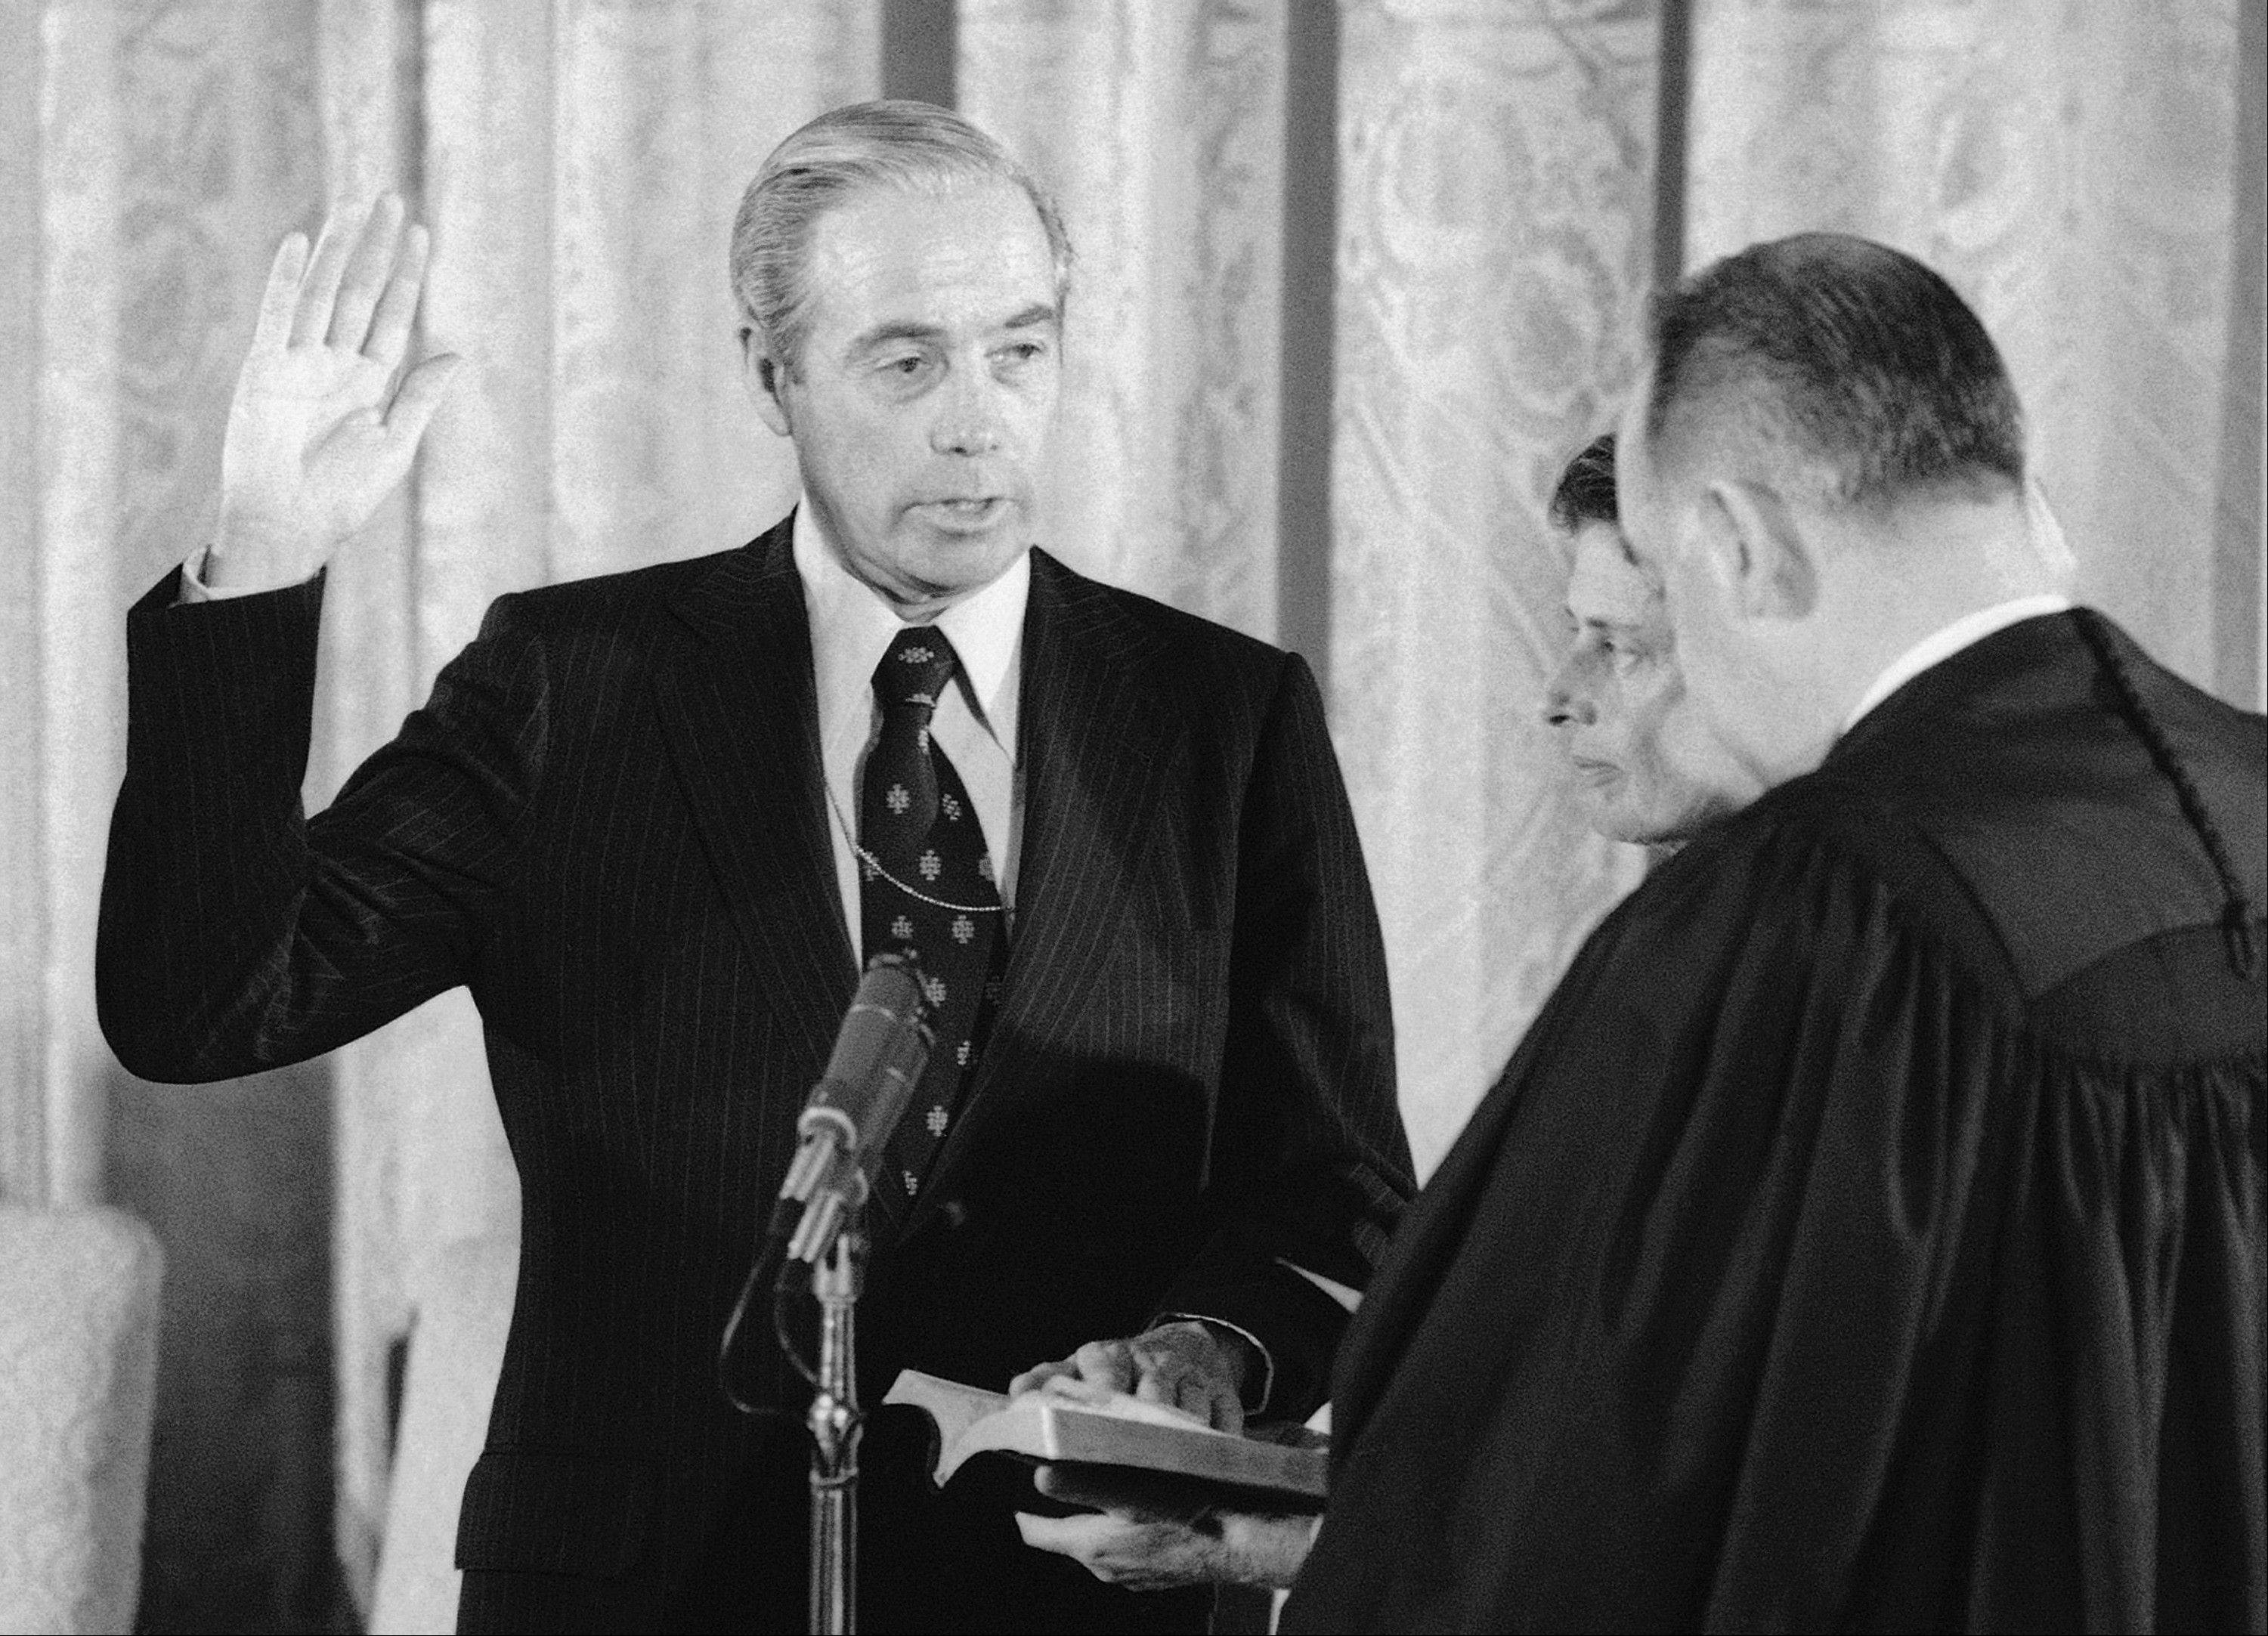 In this 1976 file photo, William Scranton Jr., left, is sworn-in as U.S. ambassador to the United Nations by Associate Supreme Court Justice Potter Stewart at the White House in Washington. Scranton, former Pennsylvania governor, presidential candidate and ambassador to the United Nations, died Sunday. He was 96.